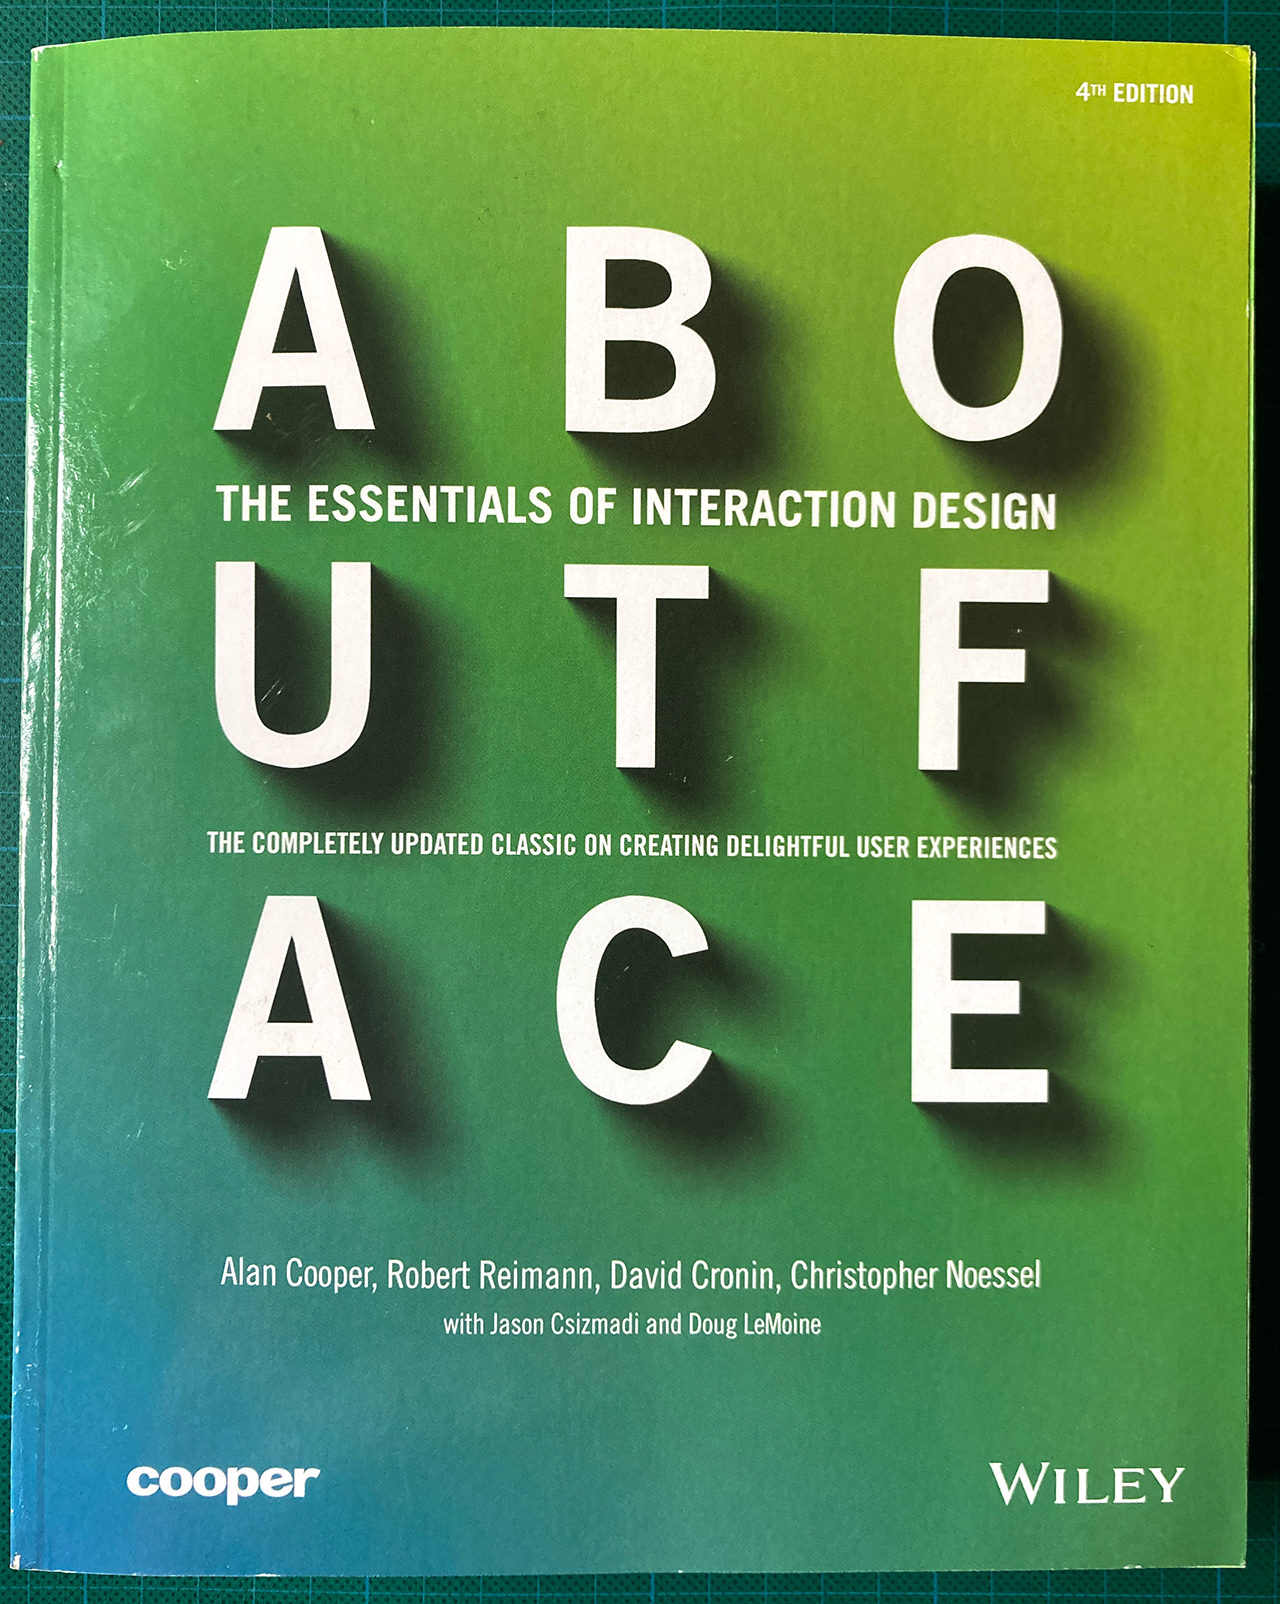 About Face. The essentials of Interactions Design. The complete updated classic on creating delightful User Experiences. 4th ed. Book Cover